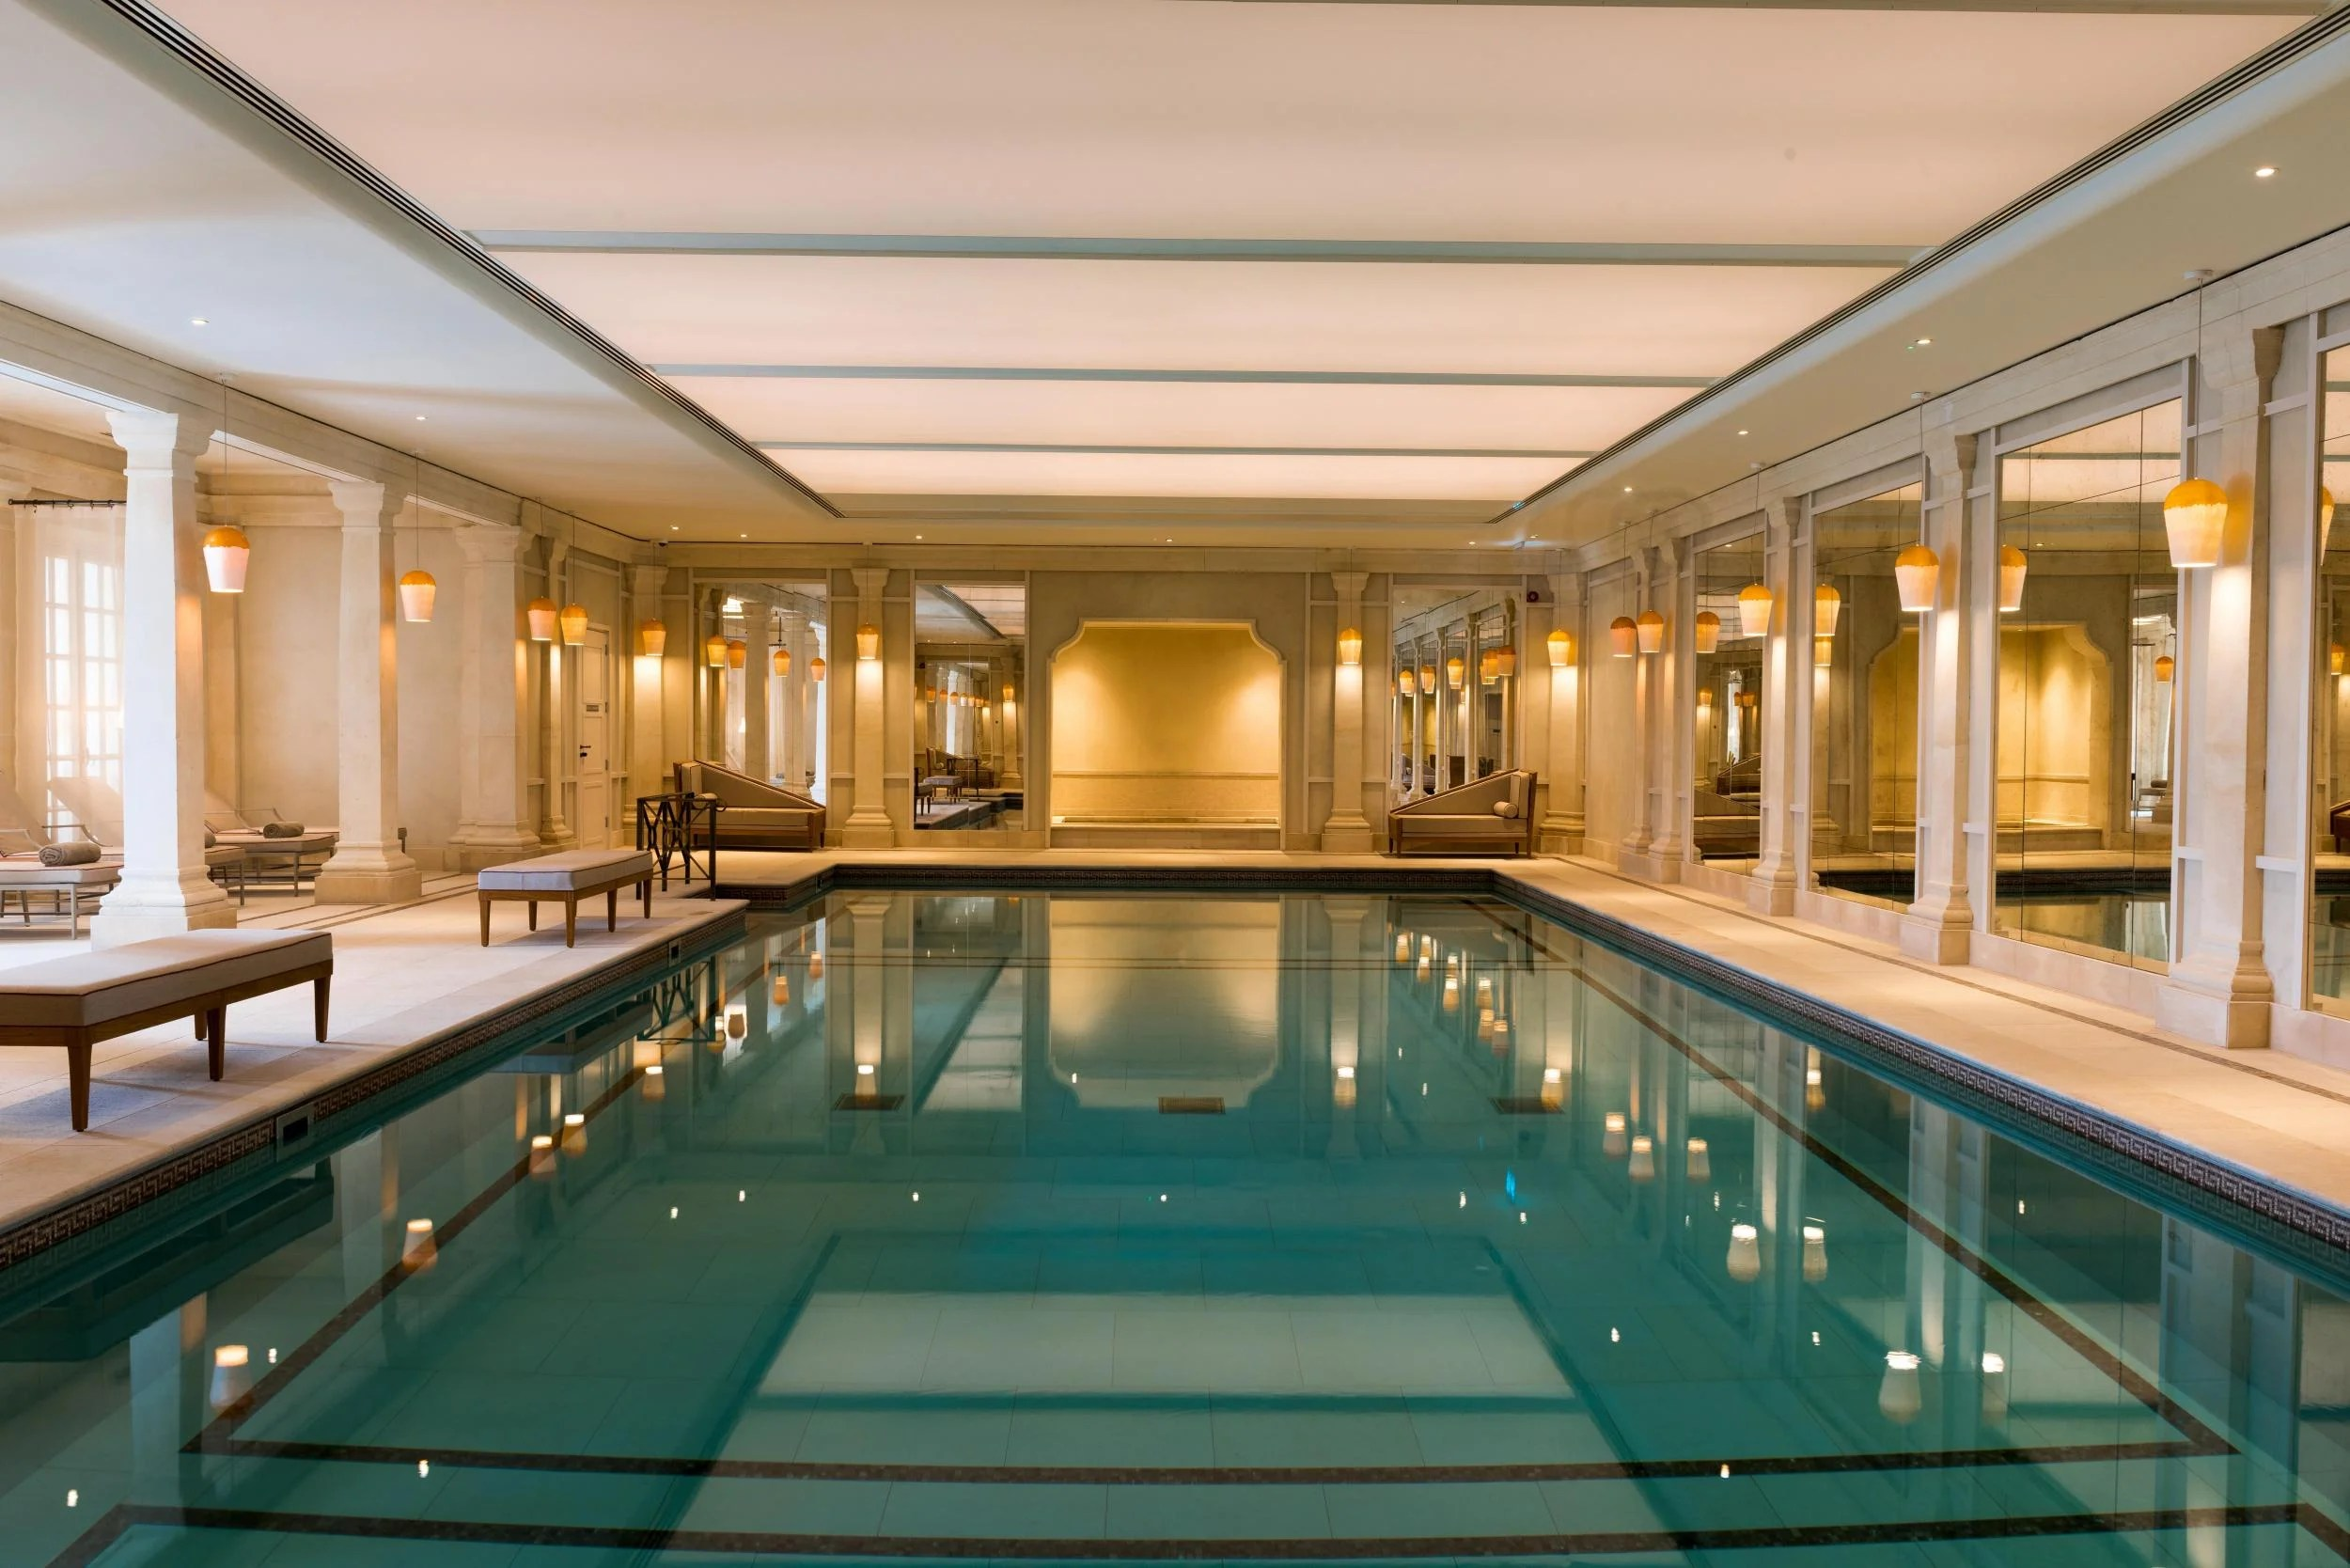 Jacuzzi Pool Was Ist Das The Most Incredible Spa Hotels In The Uk Outside Of London